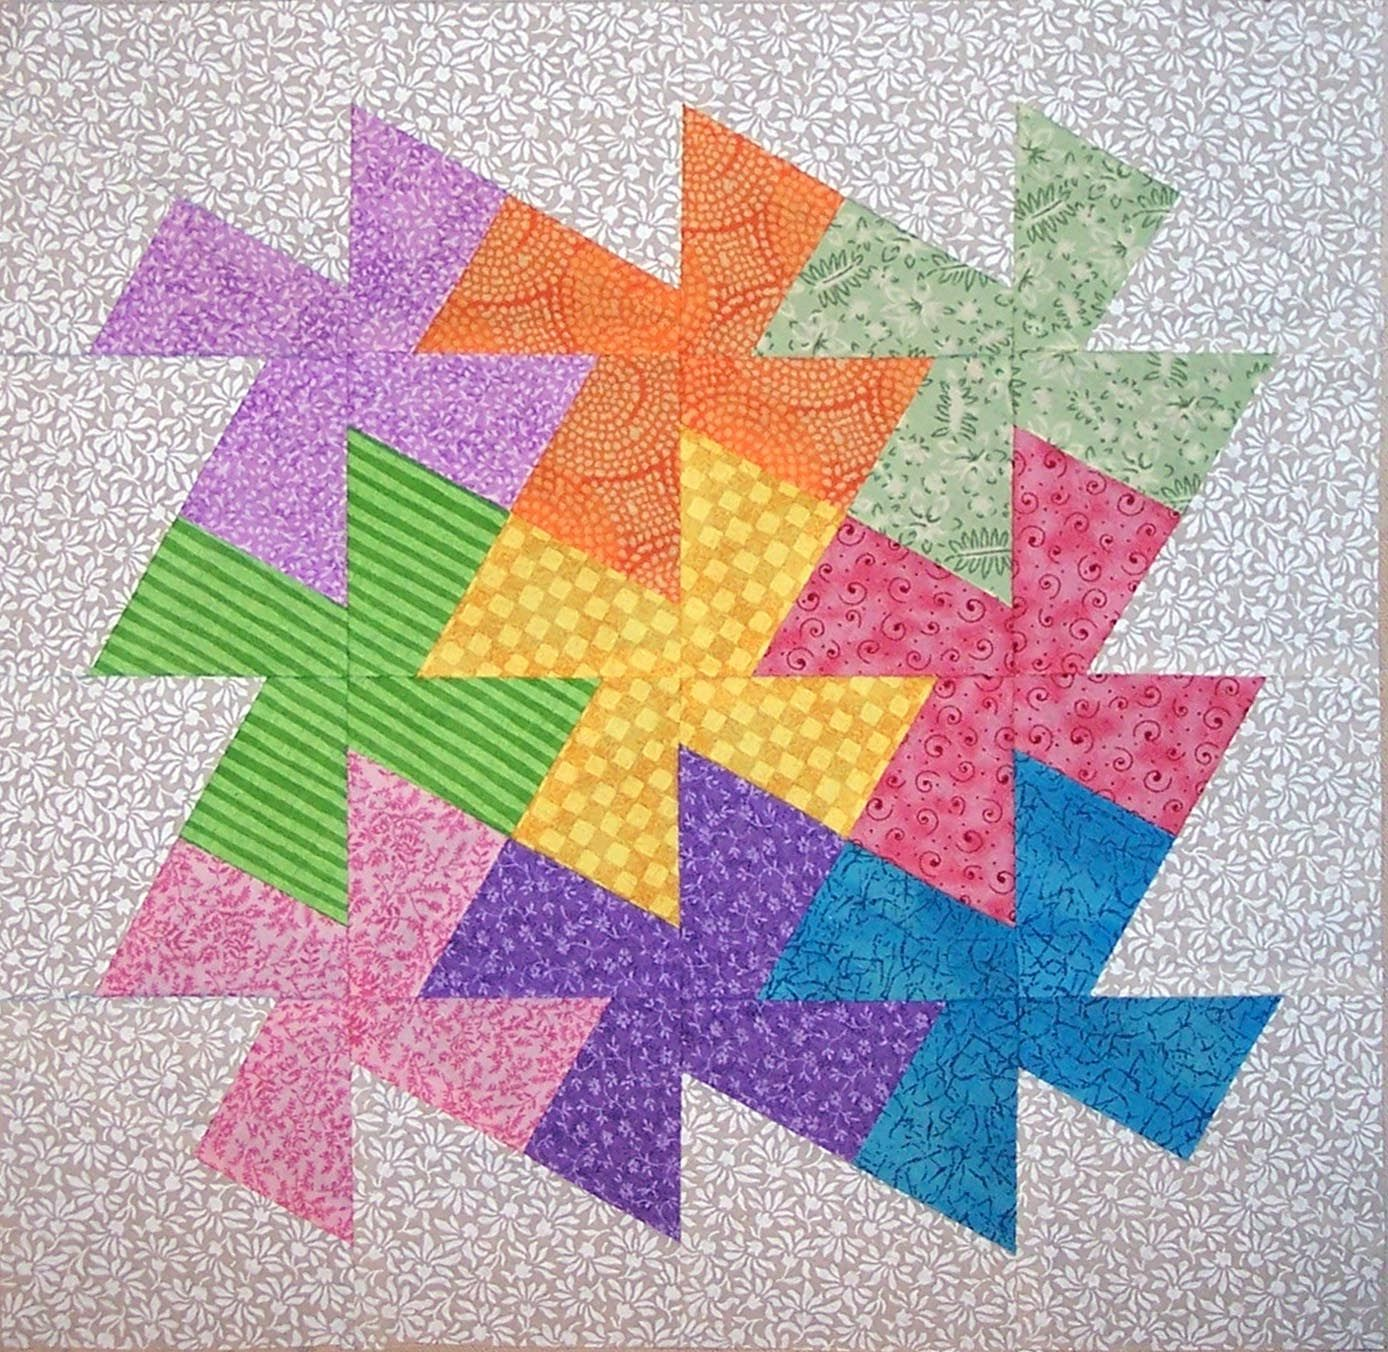 Lil' Twister quilt done in a cross pattern. Description from ... : twister quilt ruler - Adamdwight.com